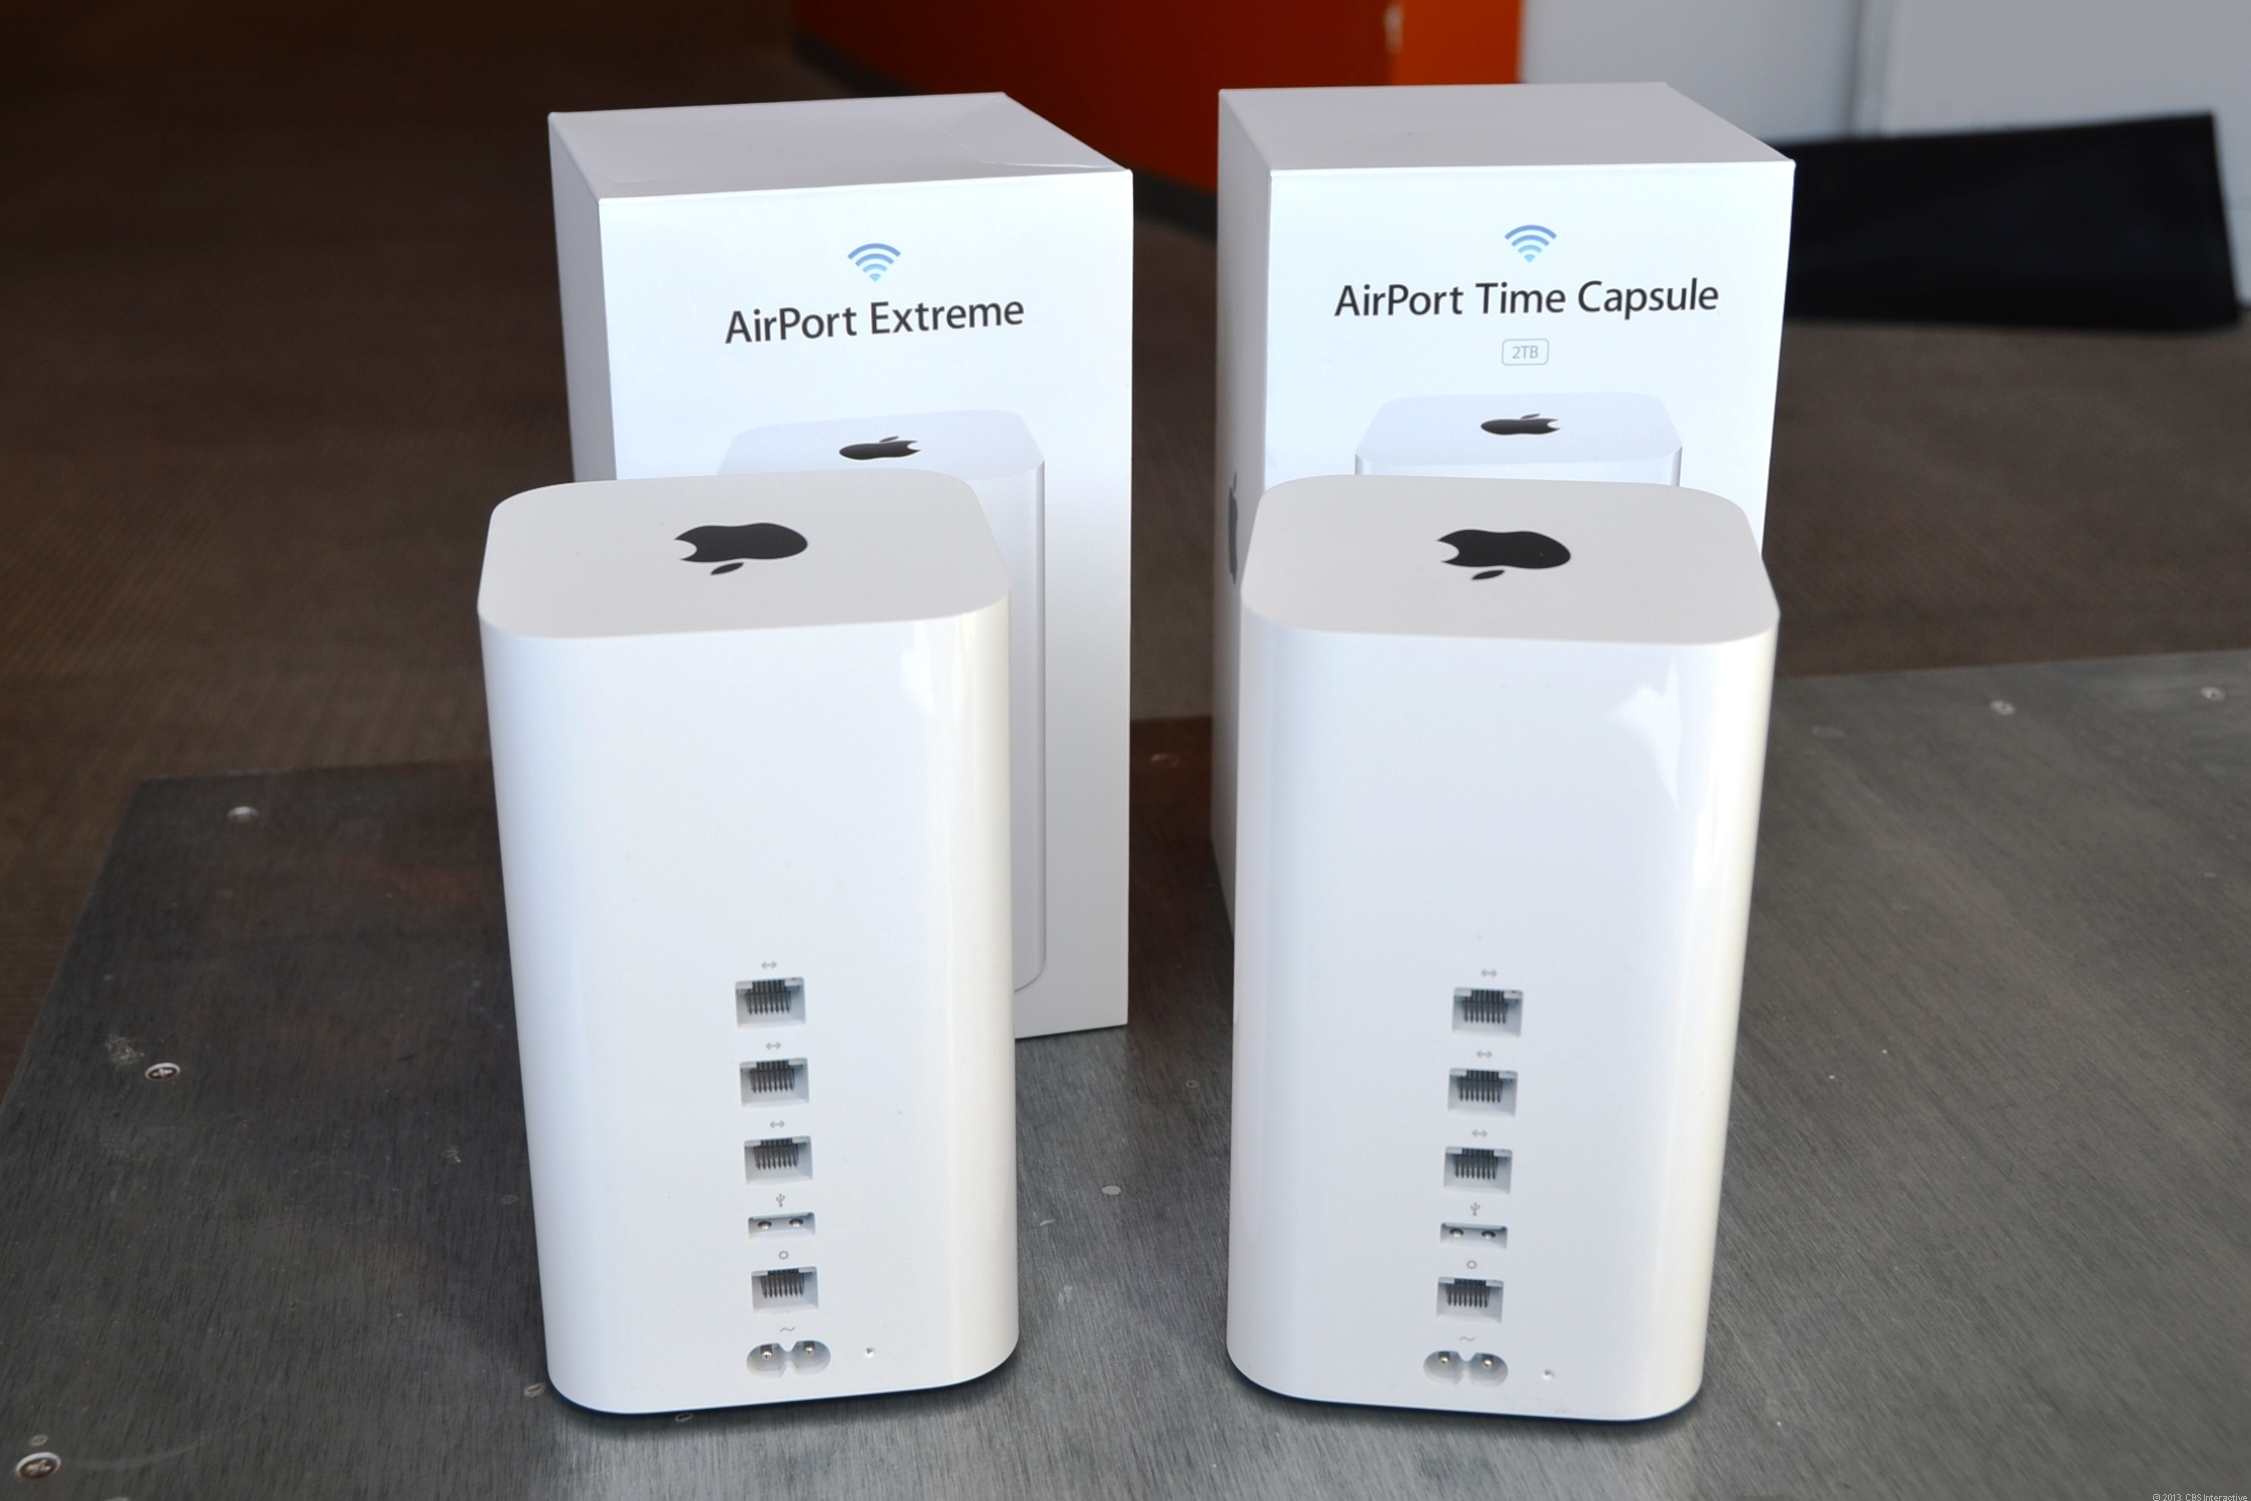 Without the boxes, you can't tell Apple's new AirPort Base Stations apart.